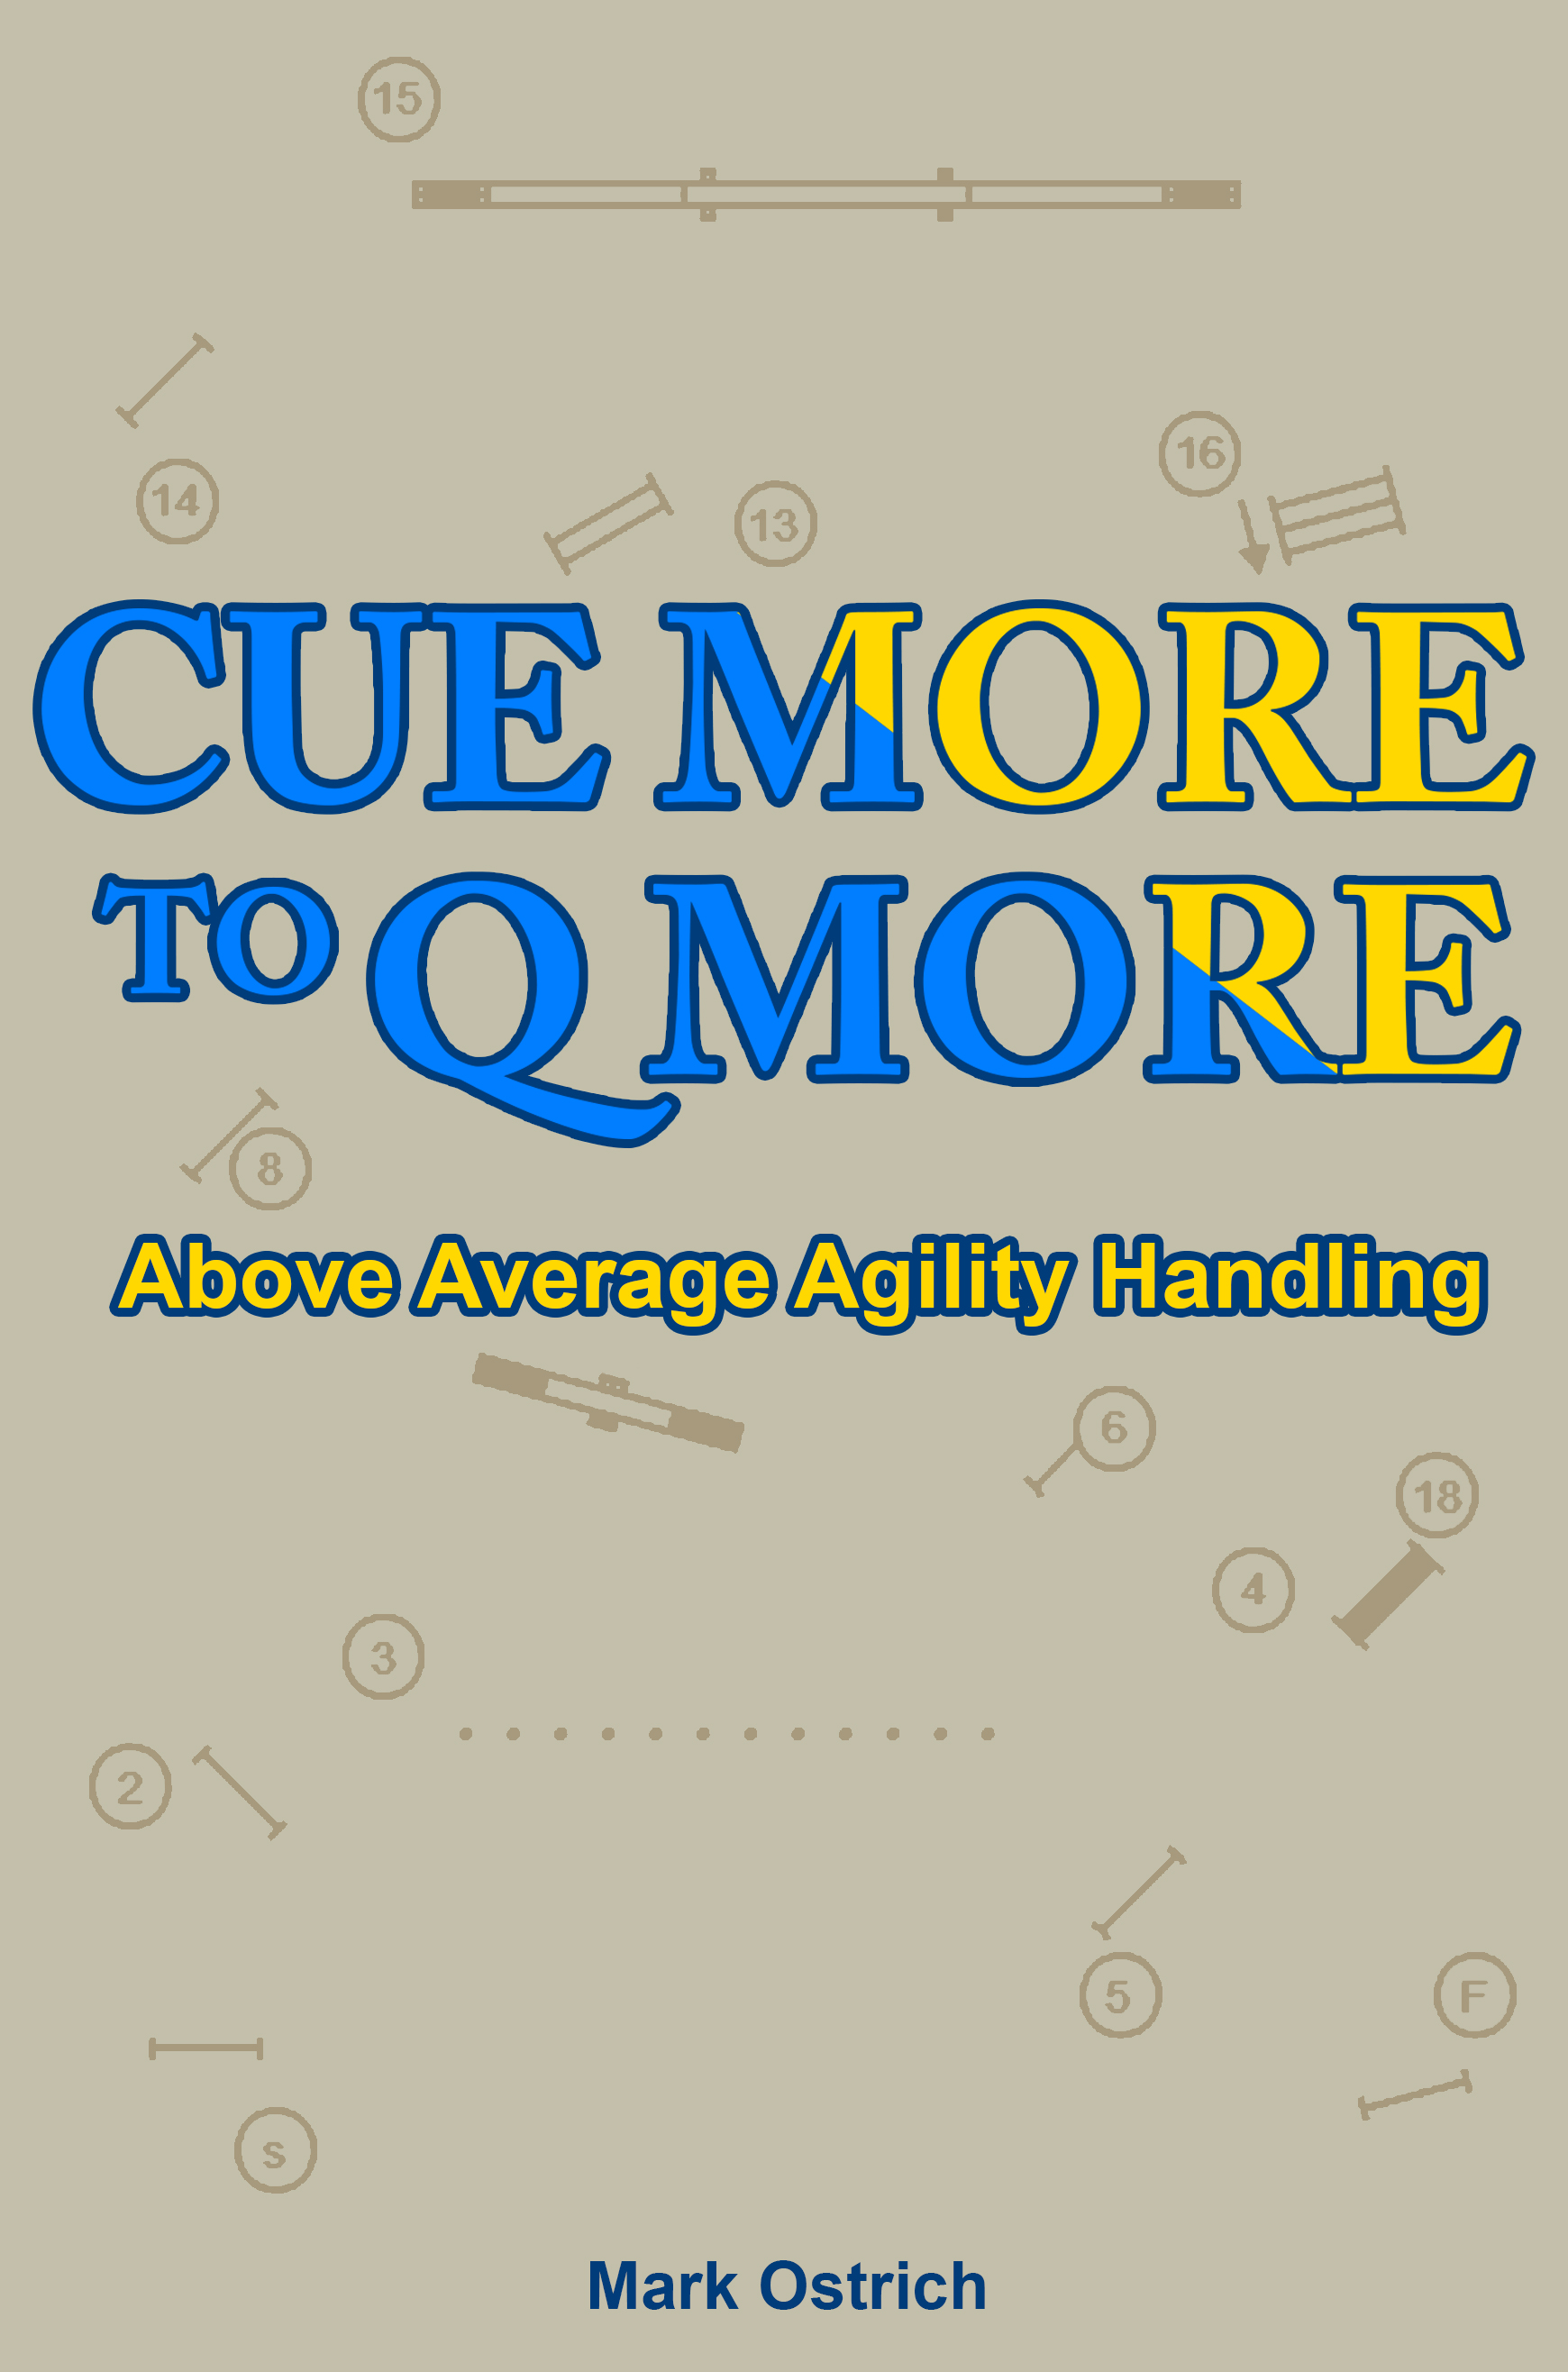 Cue More to Q More by Mark Ostrich book cover